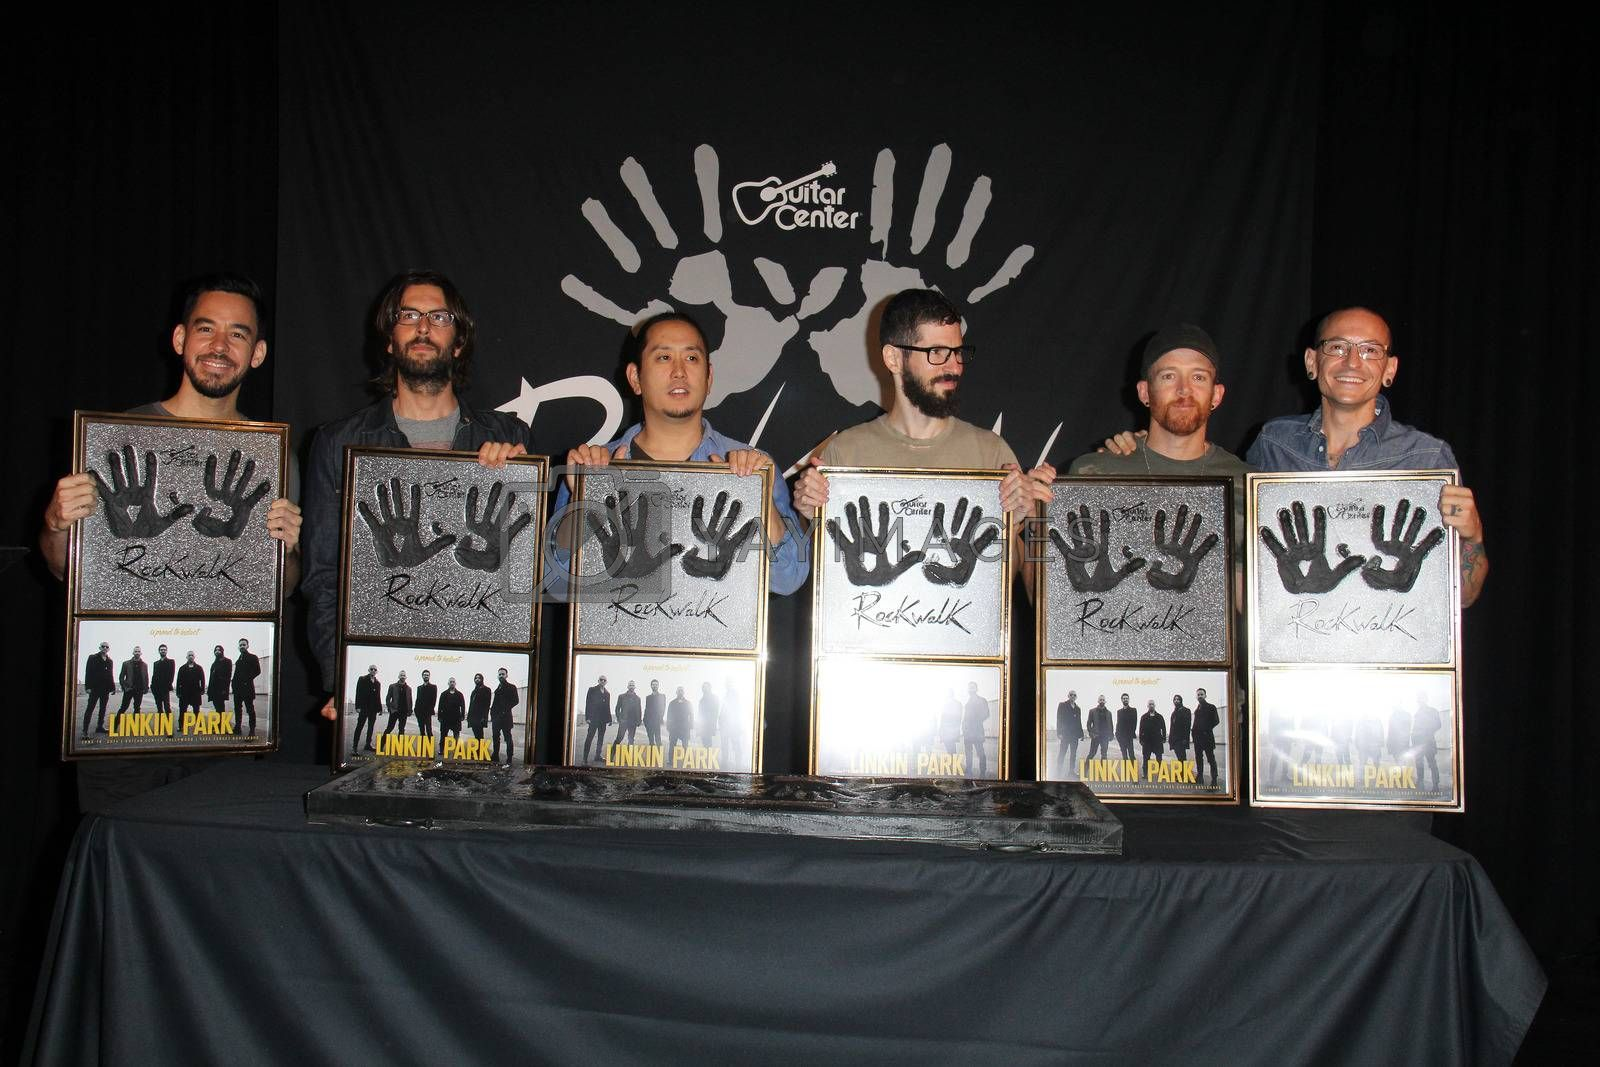 Royalty free image of Linkin Park, Mike Shinoda, Rob Bourdon, Joe Hahn, Brad Delson, Dave Farrell, Chester Bennington at the ceremony inducting Linkin Park into the Guitar Center's Rockwalk, Guitar Center, Los Angeles, CA 06-18-14/ImageCollect by ImageCollect